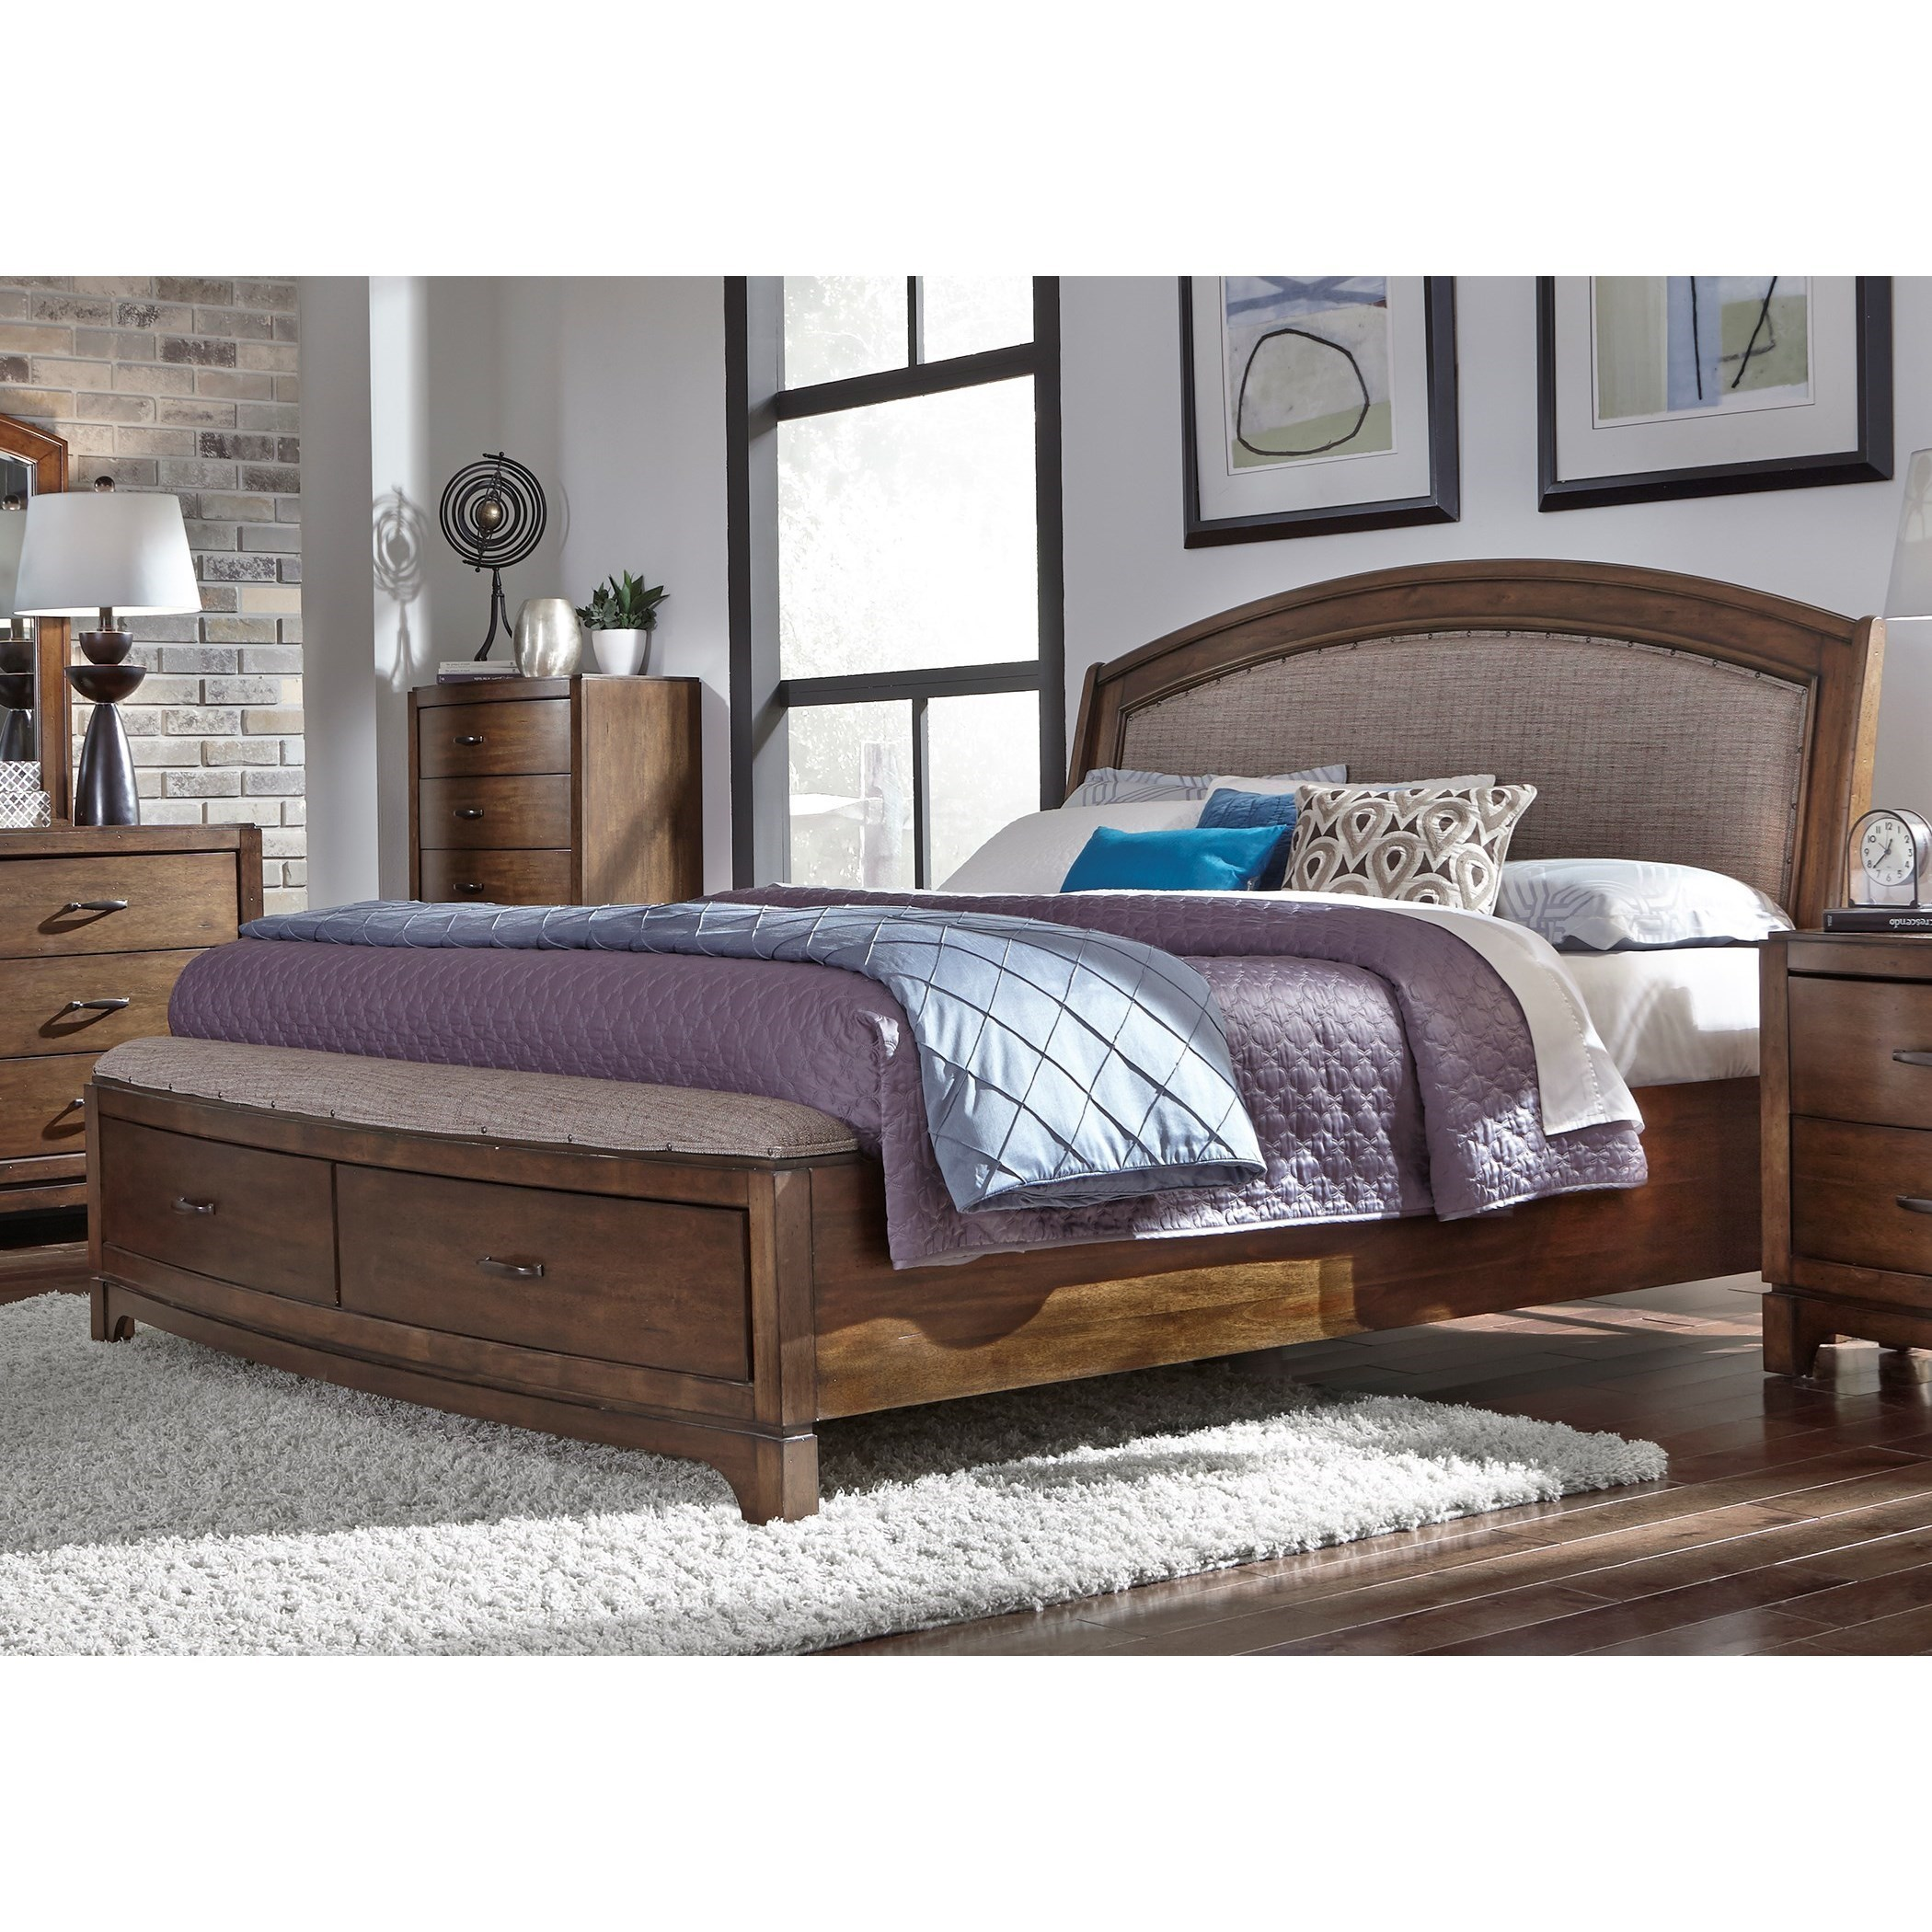 Picture of: Liberty Furniture Avalon Iii King Stoarge Bed With Upholstered Headboard Novello Home Furnishings Platform Beds Low Profile Beds